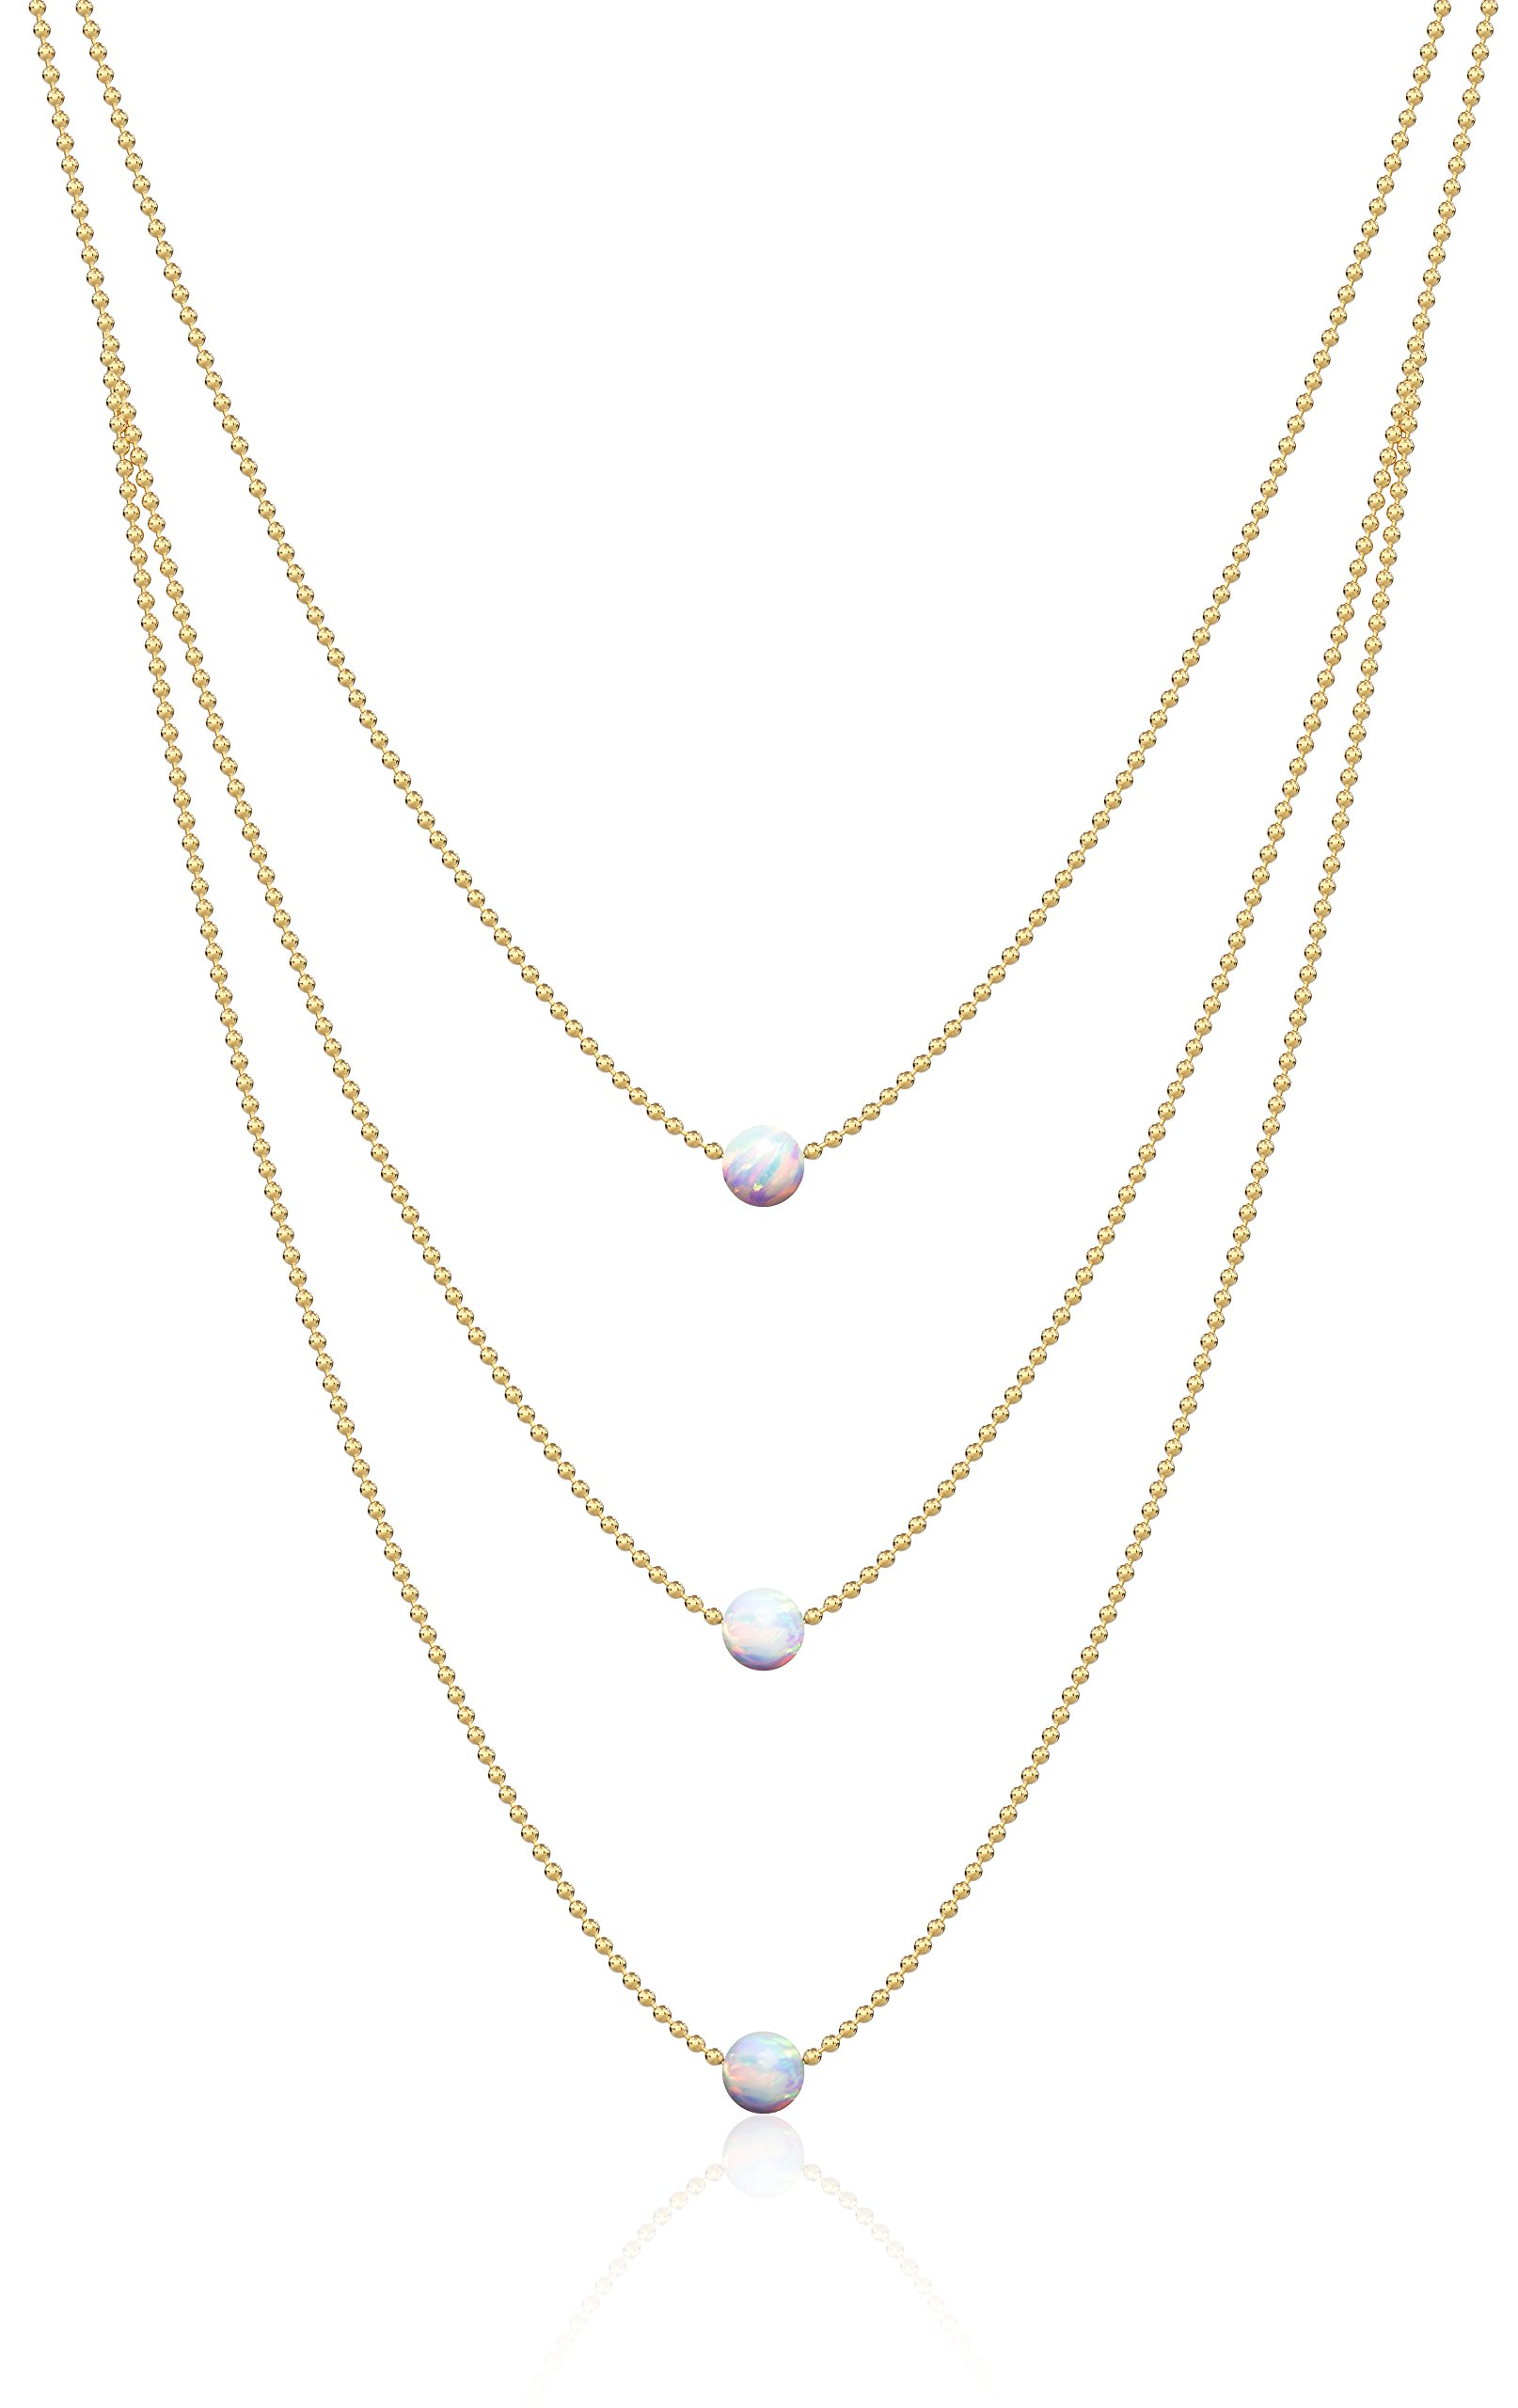 Benevolence LA Opal Necklace Gold Choker: Platinum Sterling Silver White Fire Opal Pendant Necklaces Three tiered 14k Opal 13 Inch Ball Chain (3 Tier Opal)